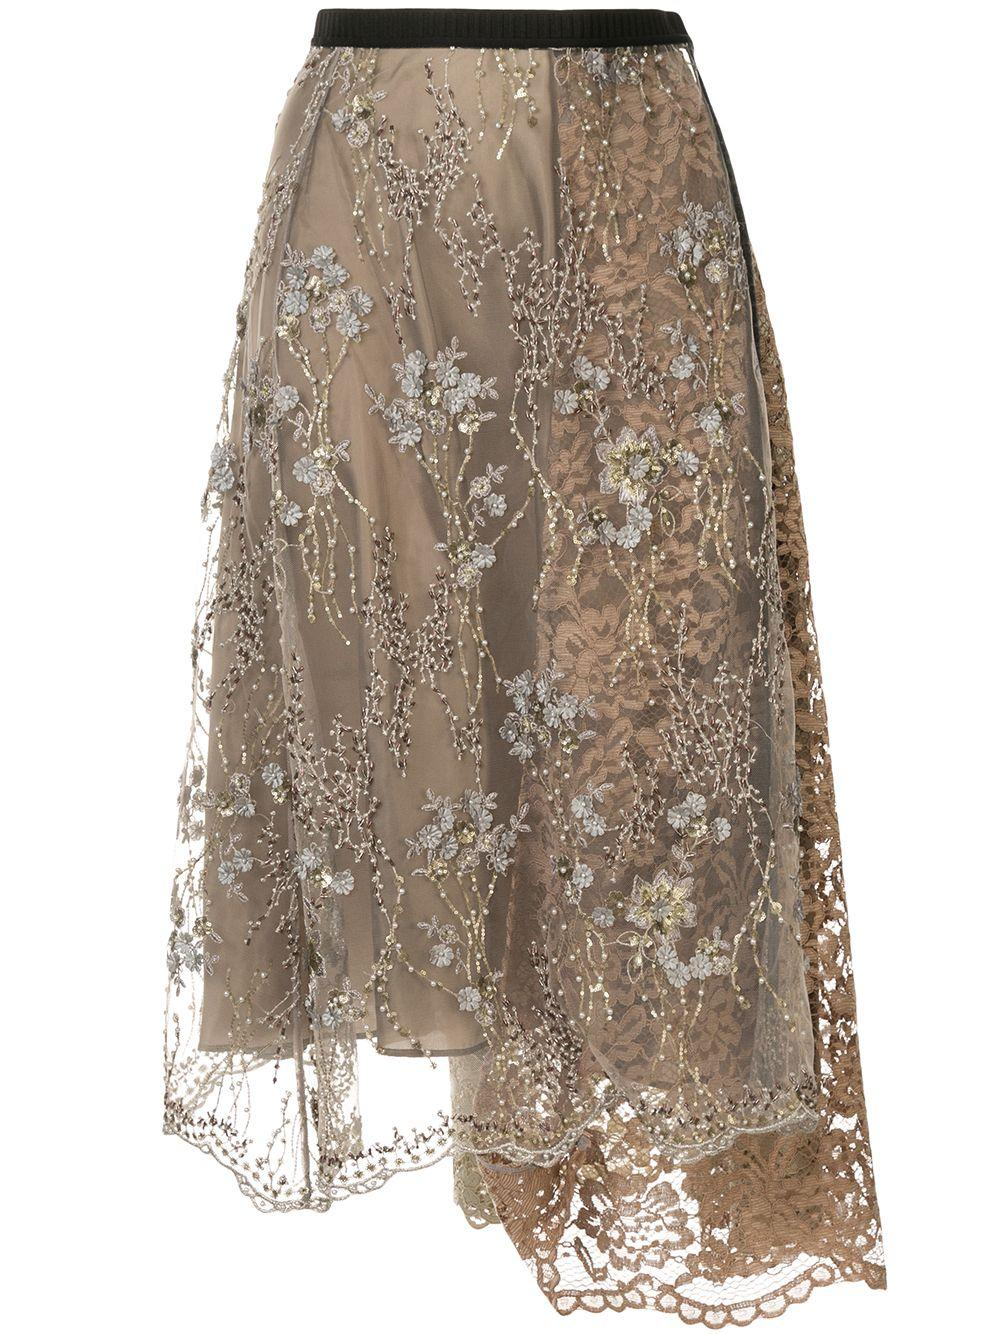 Antonio Marras embellished lace midi skirt